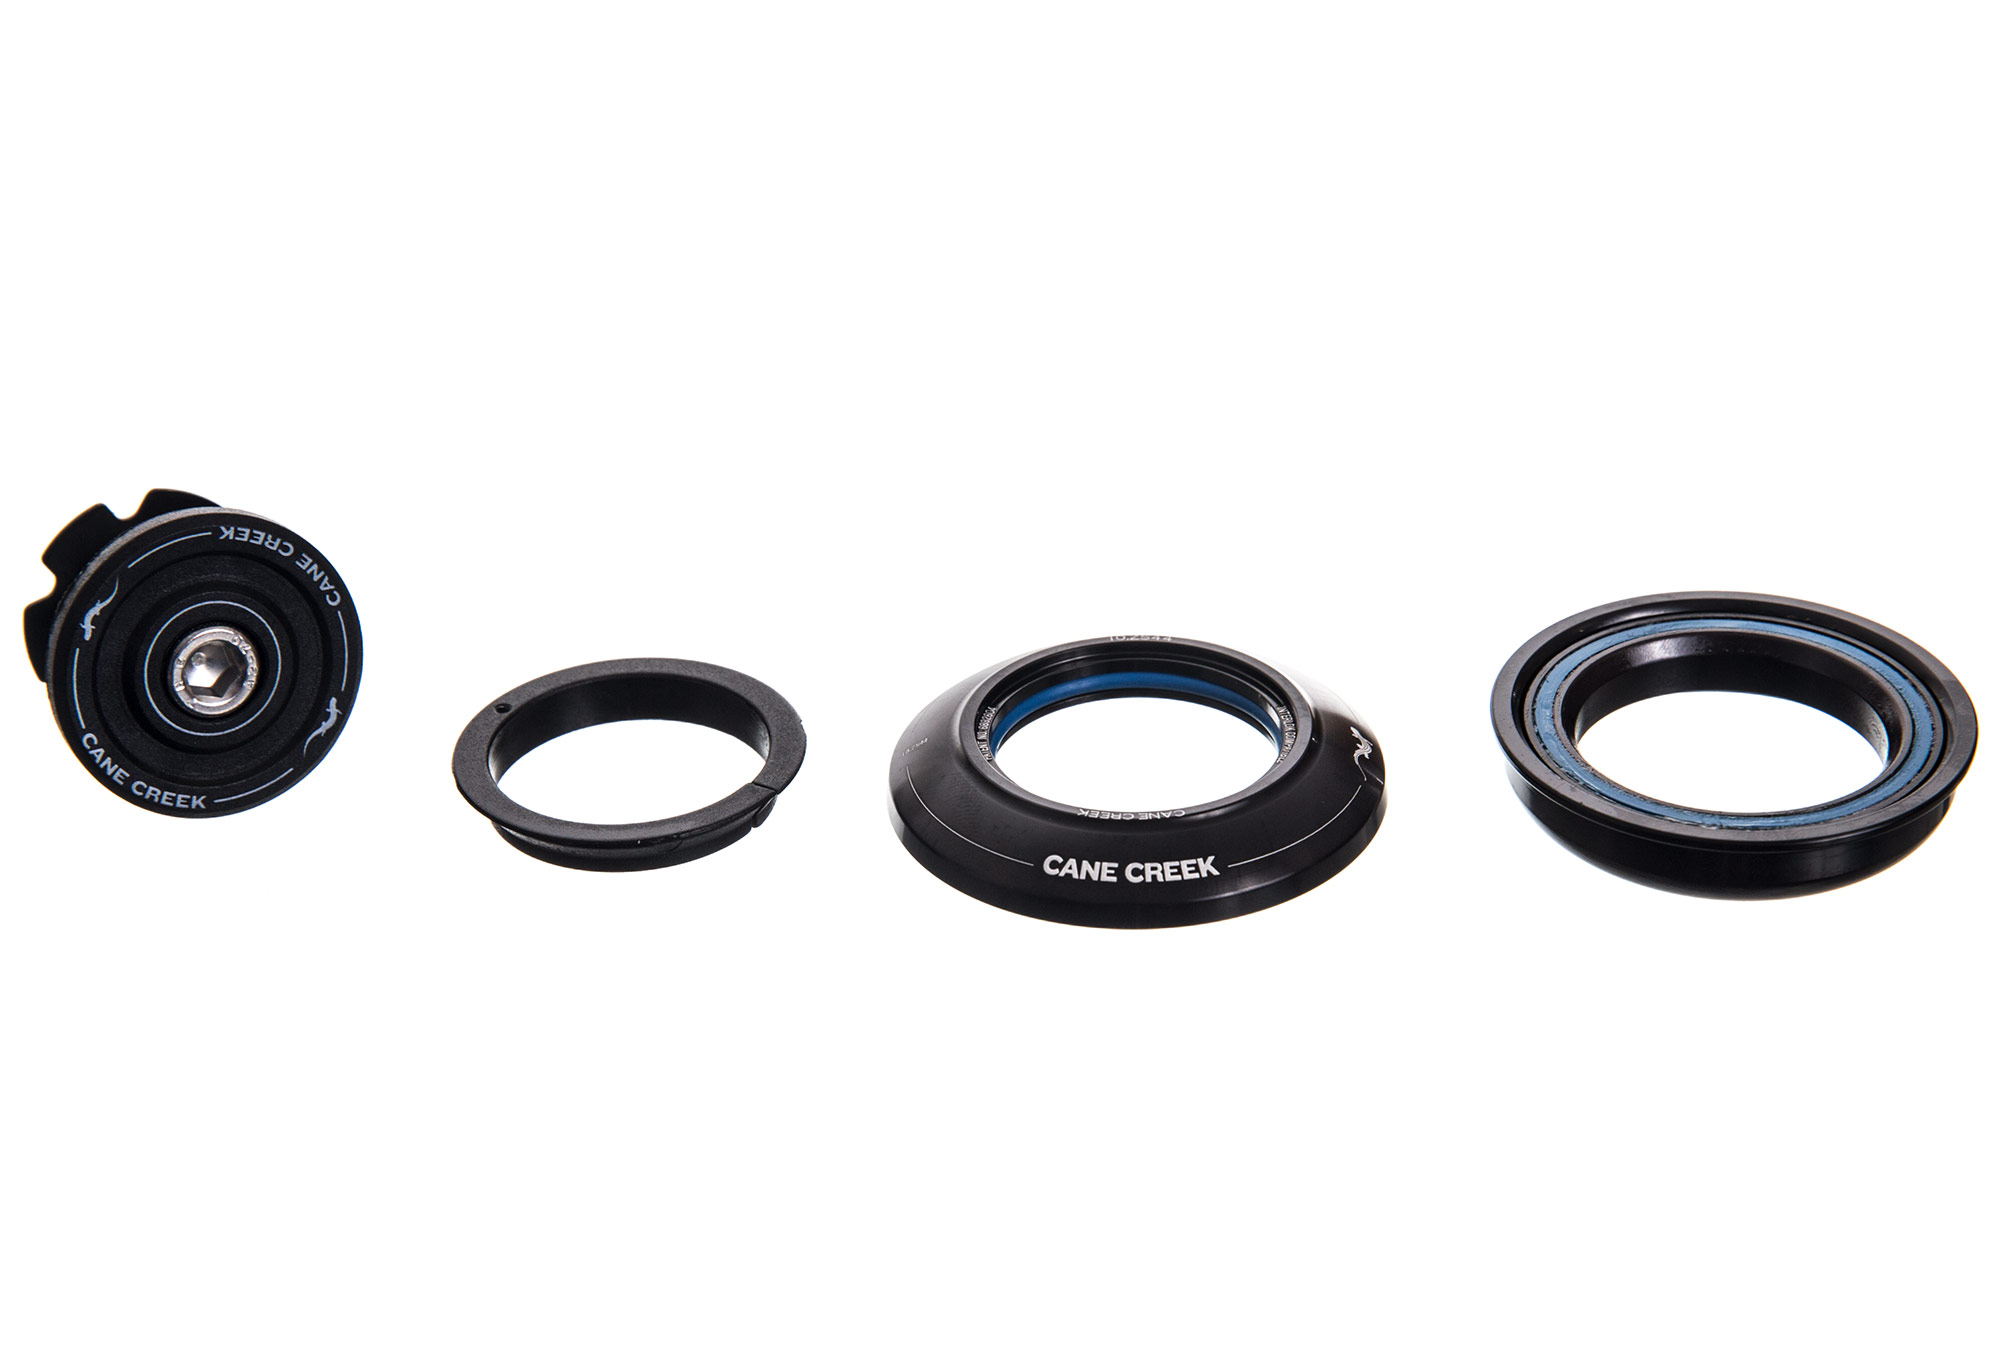 Cane Creek 10 Series Complete Headset ZS44//28.6mm Upper ZS44//30.0mm Lower